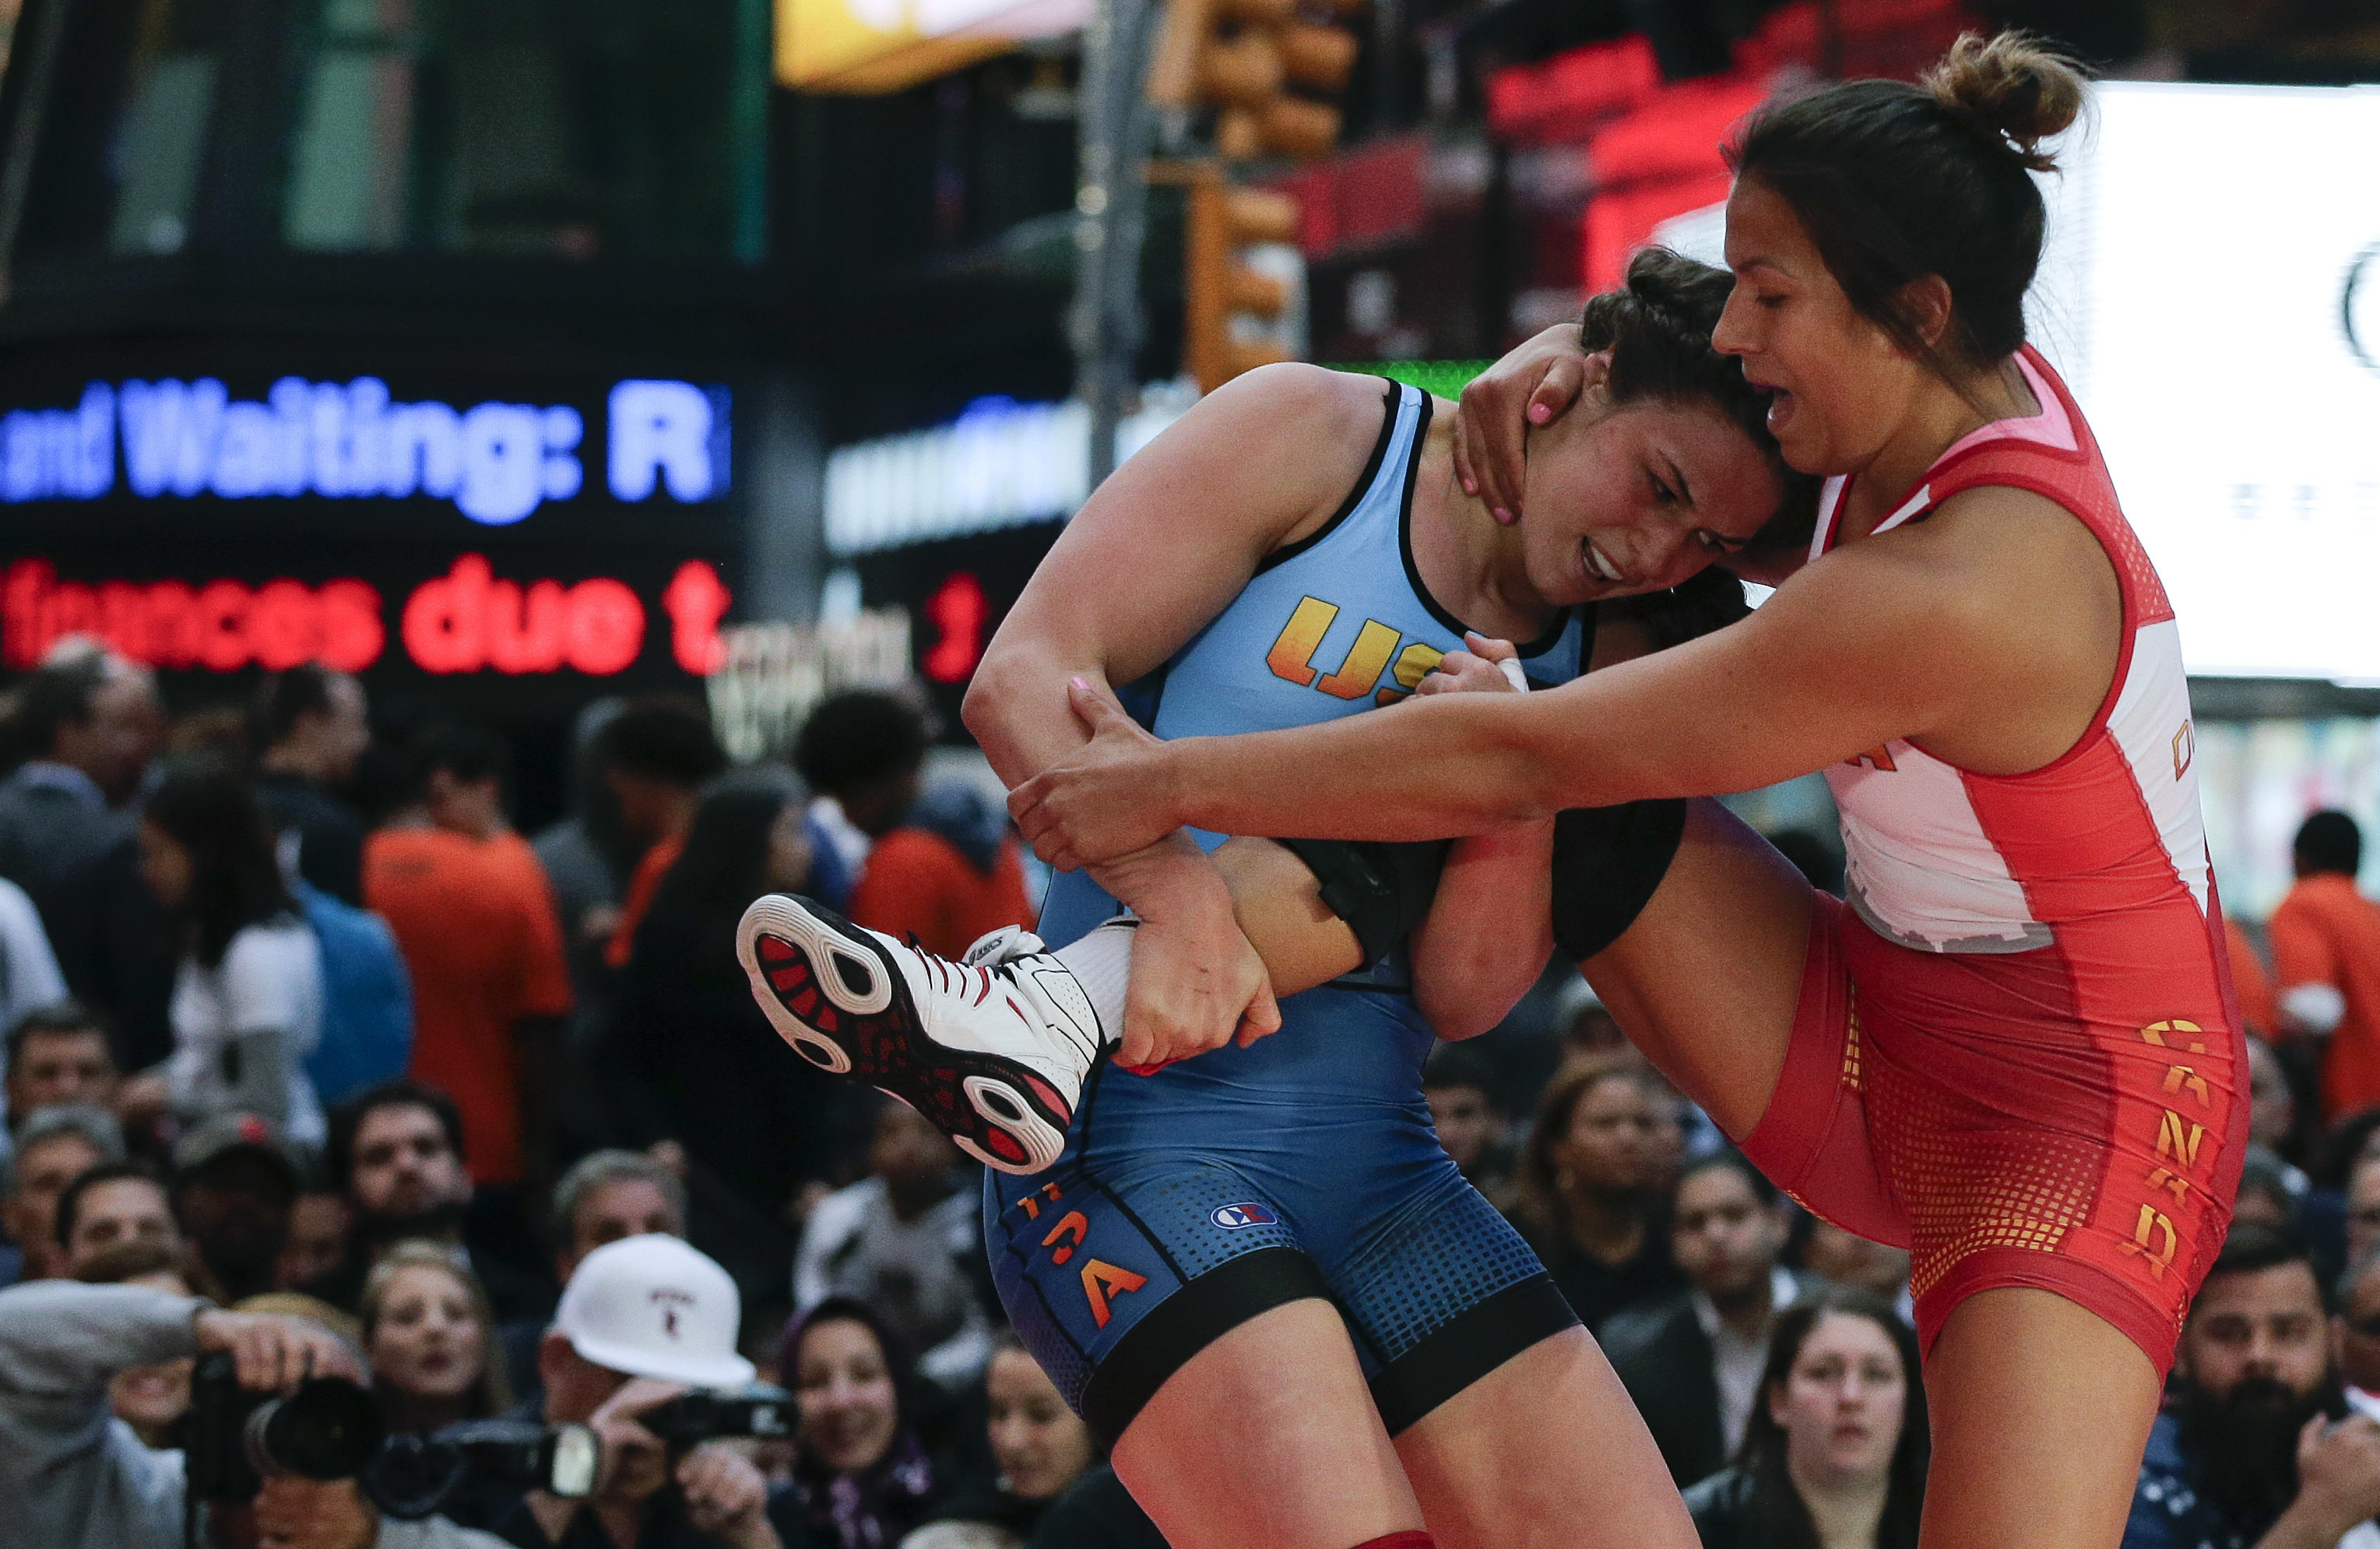 FILE - In this May 19, 2016, file photo, Adeline Gray, left, attempts to take down Canada's Justina Di Stasio during the Beat the Streets wrestling exhibition in Times Square in New York. Gray is ranked No. 1 at 75 kilograms (165 pounds) and will attempt